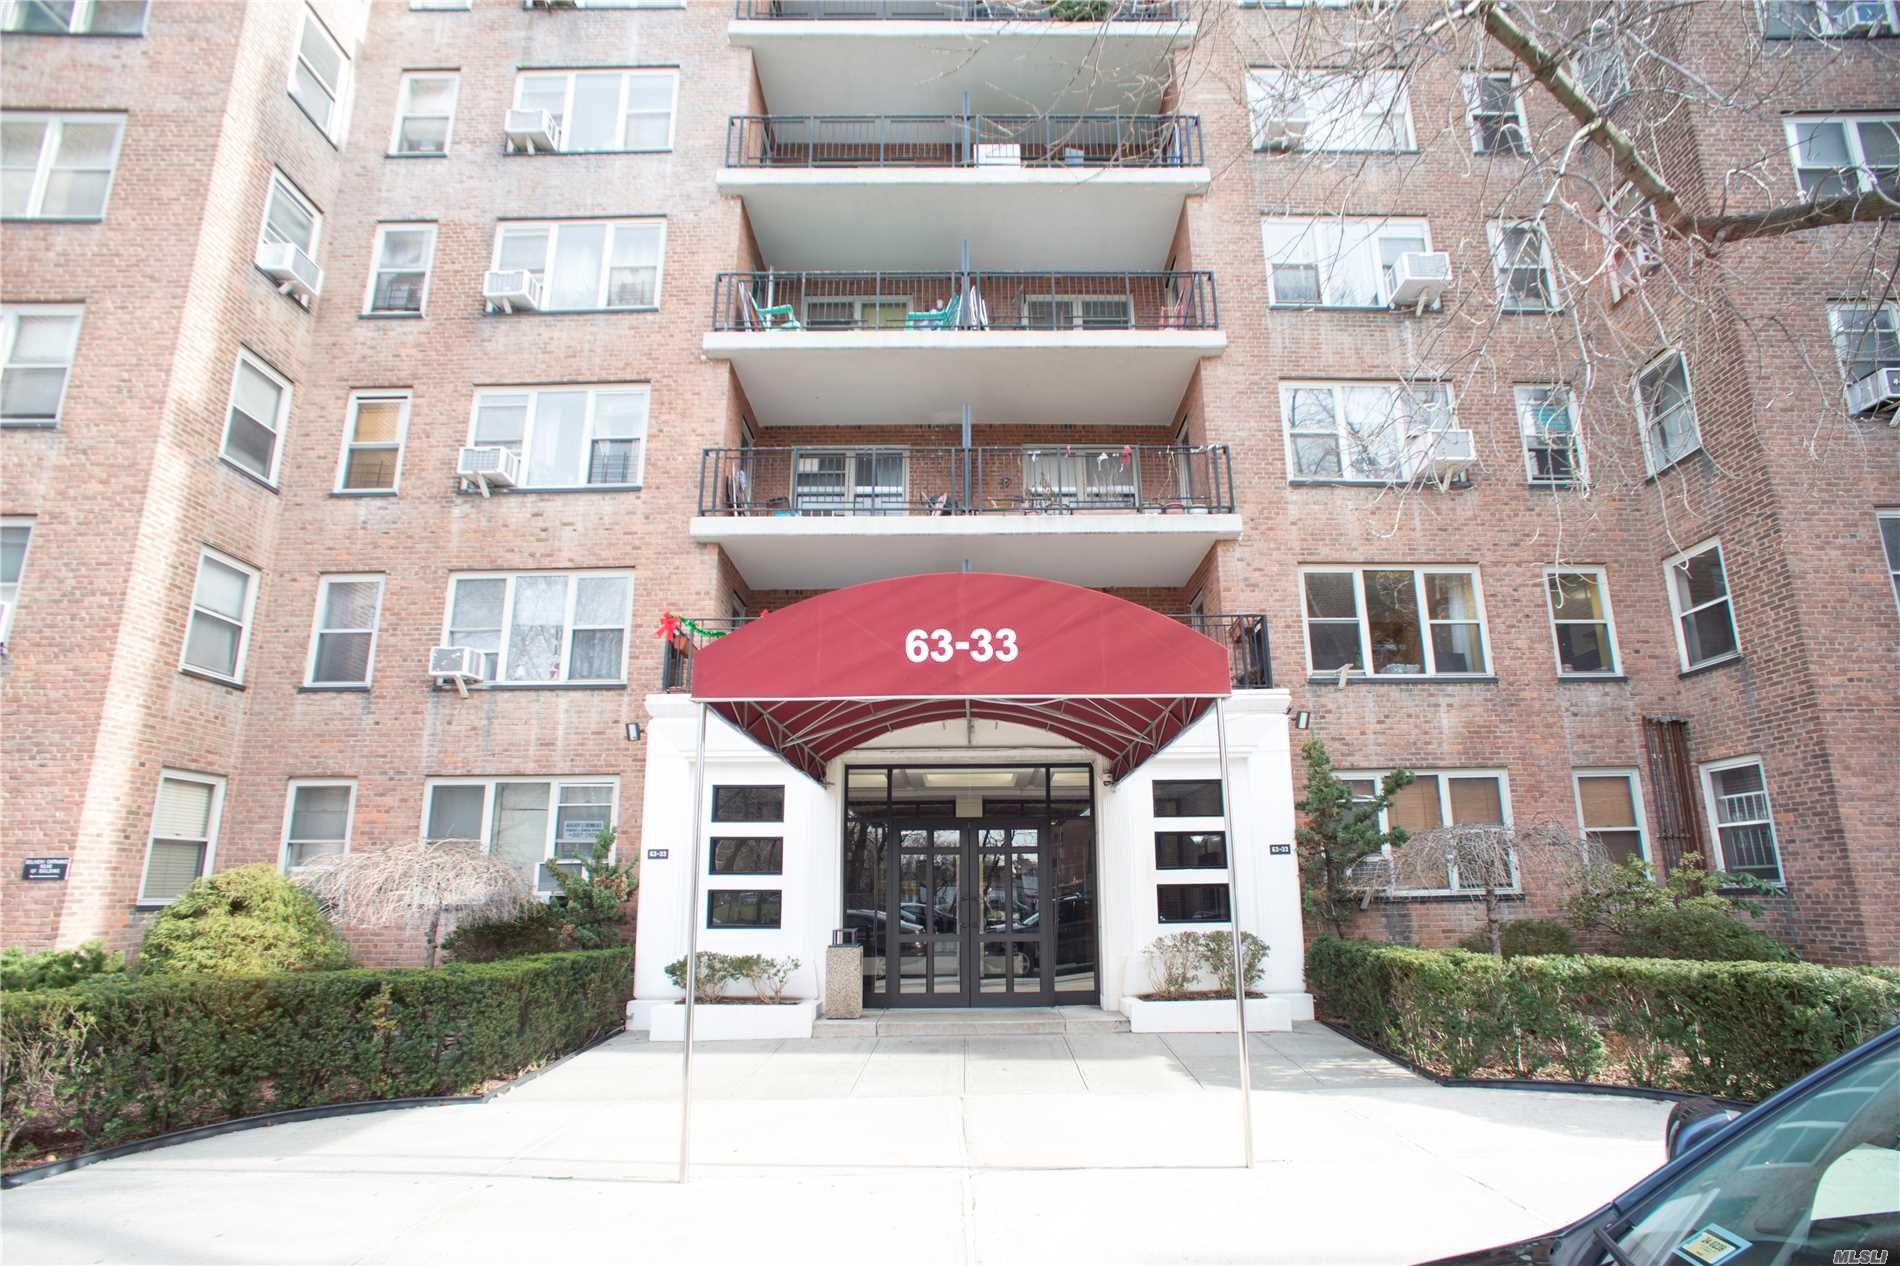 24 Hours Doorman With Laundry In The Basement, A Few Month New Elevator With Garbage Collect Room On Each Floor. The View Of Corona Park & 3 Blocks Away To Shopping Center - Rego Park Center,  Bright Rooms With Large Windows And 7 Walking Closets, Price Including An Indoor Parking Spot #44. New Ge Appliances (3-5 Year's Old) Refrigerator, Dishwasher, Gas Range & Microwave-Oven. 1 Min. Walk To Bus Stop Qm10, Qm11, Qm40. 2 Min. Walk To Q38. 3 Min. Walk To Q38, Qm12 & Qm42. 4 Min Walk To Q60, Q72.